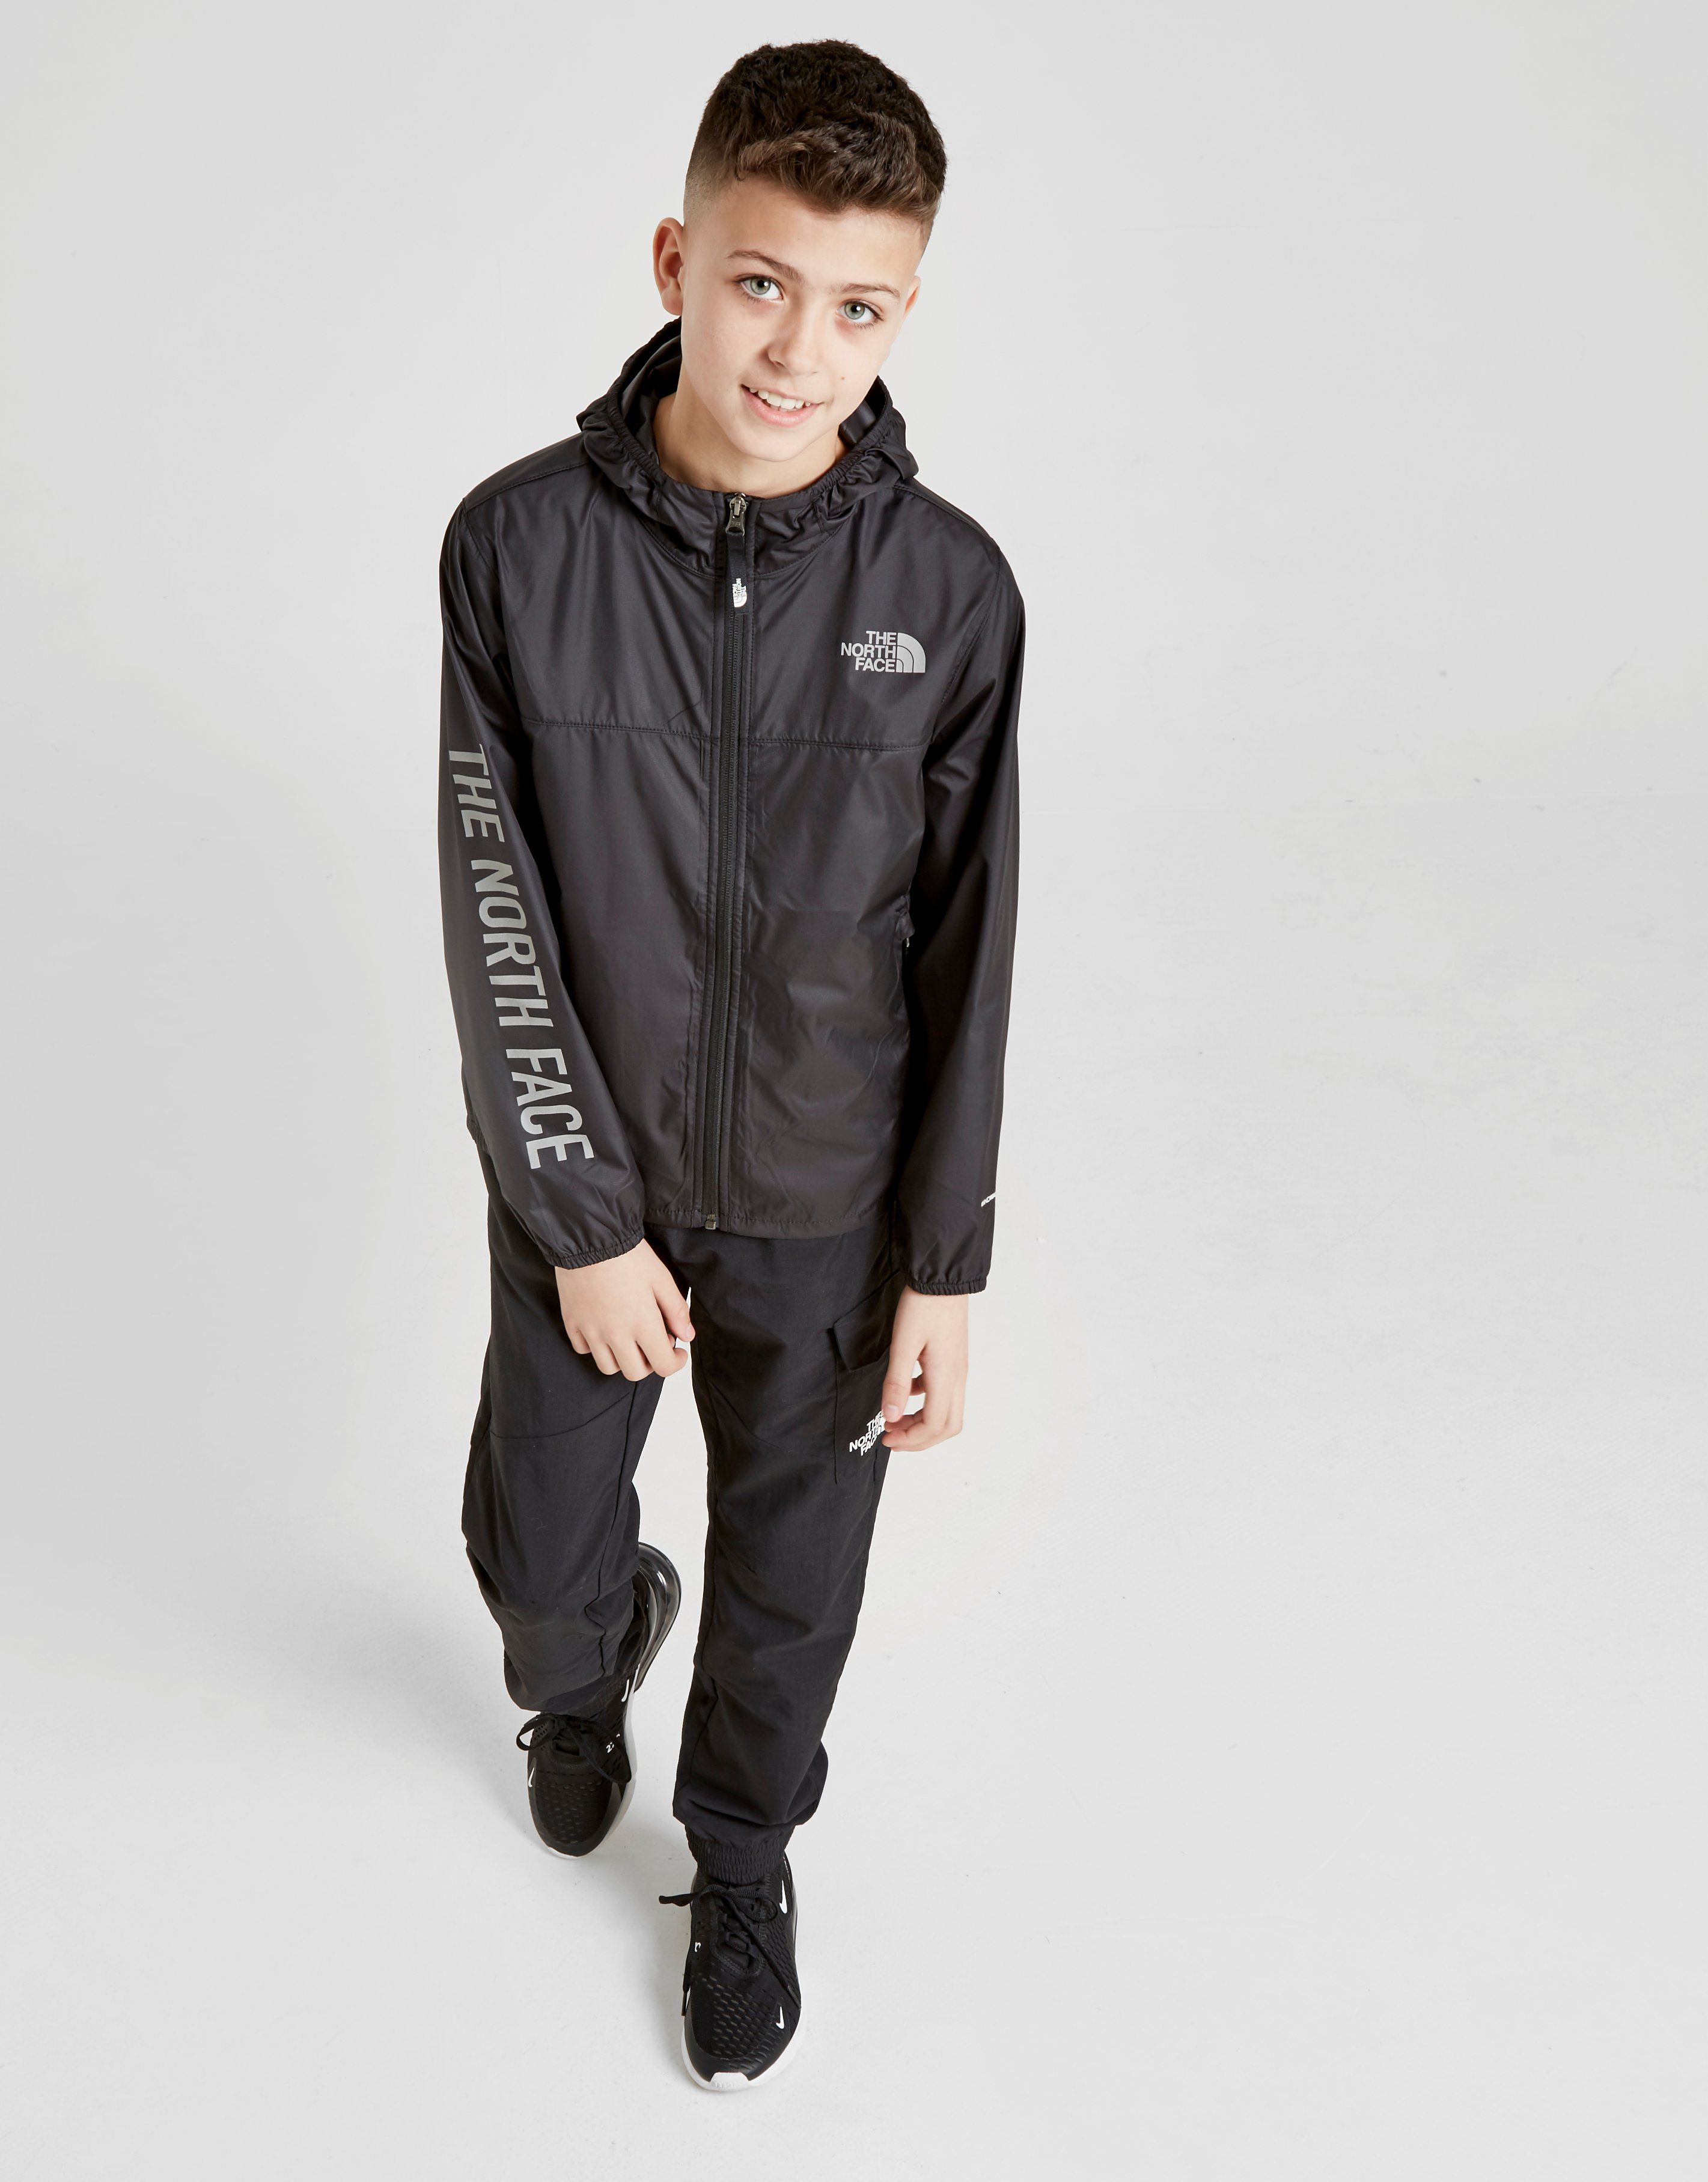 The North Face Reactor Jacket Junior